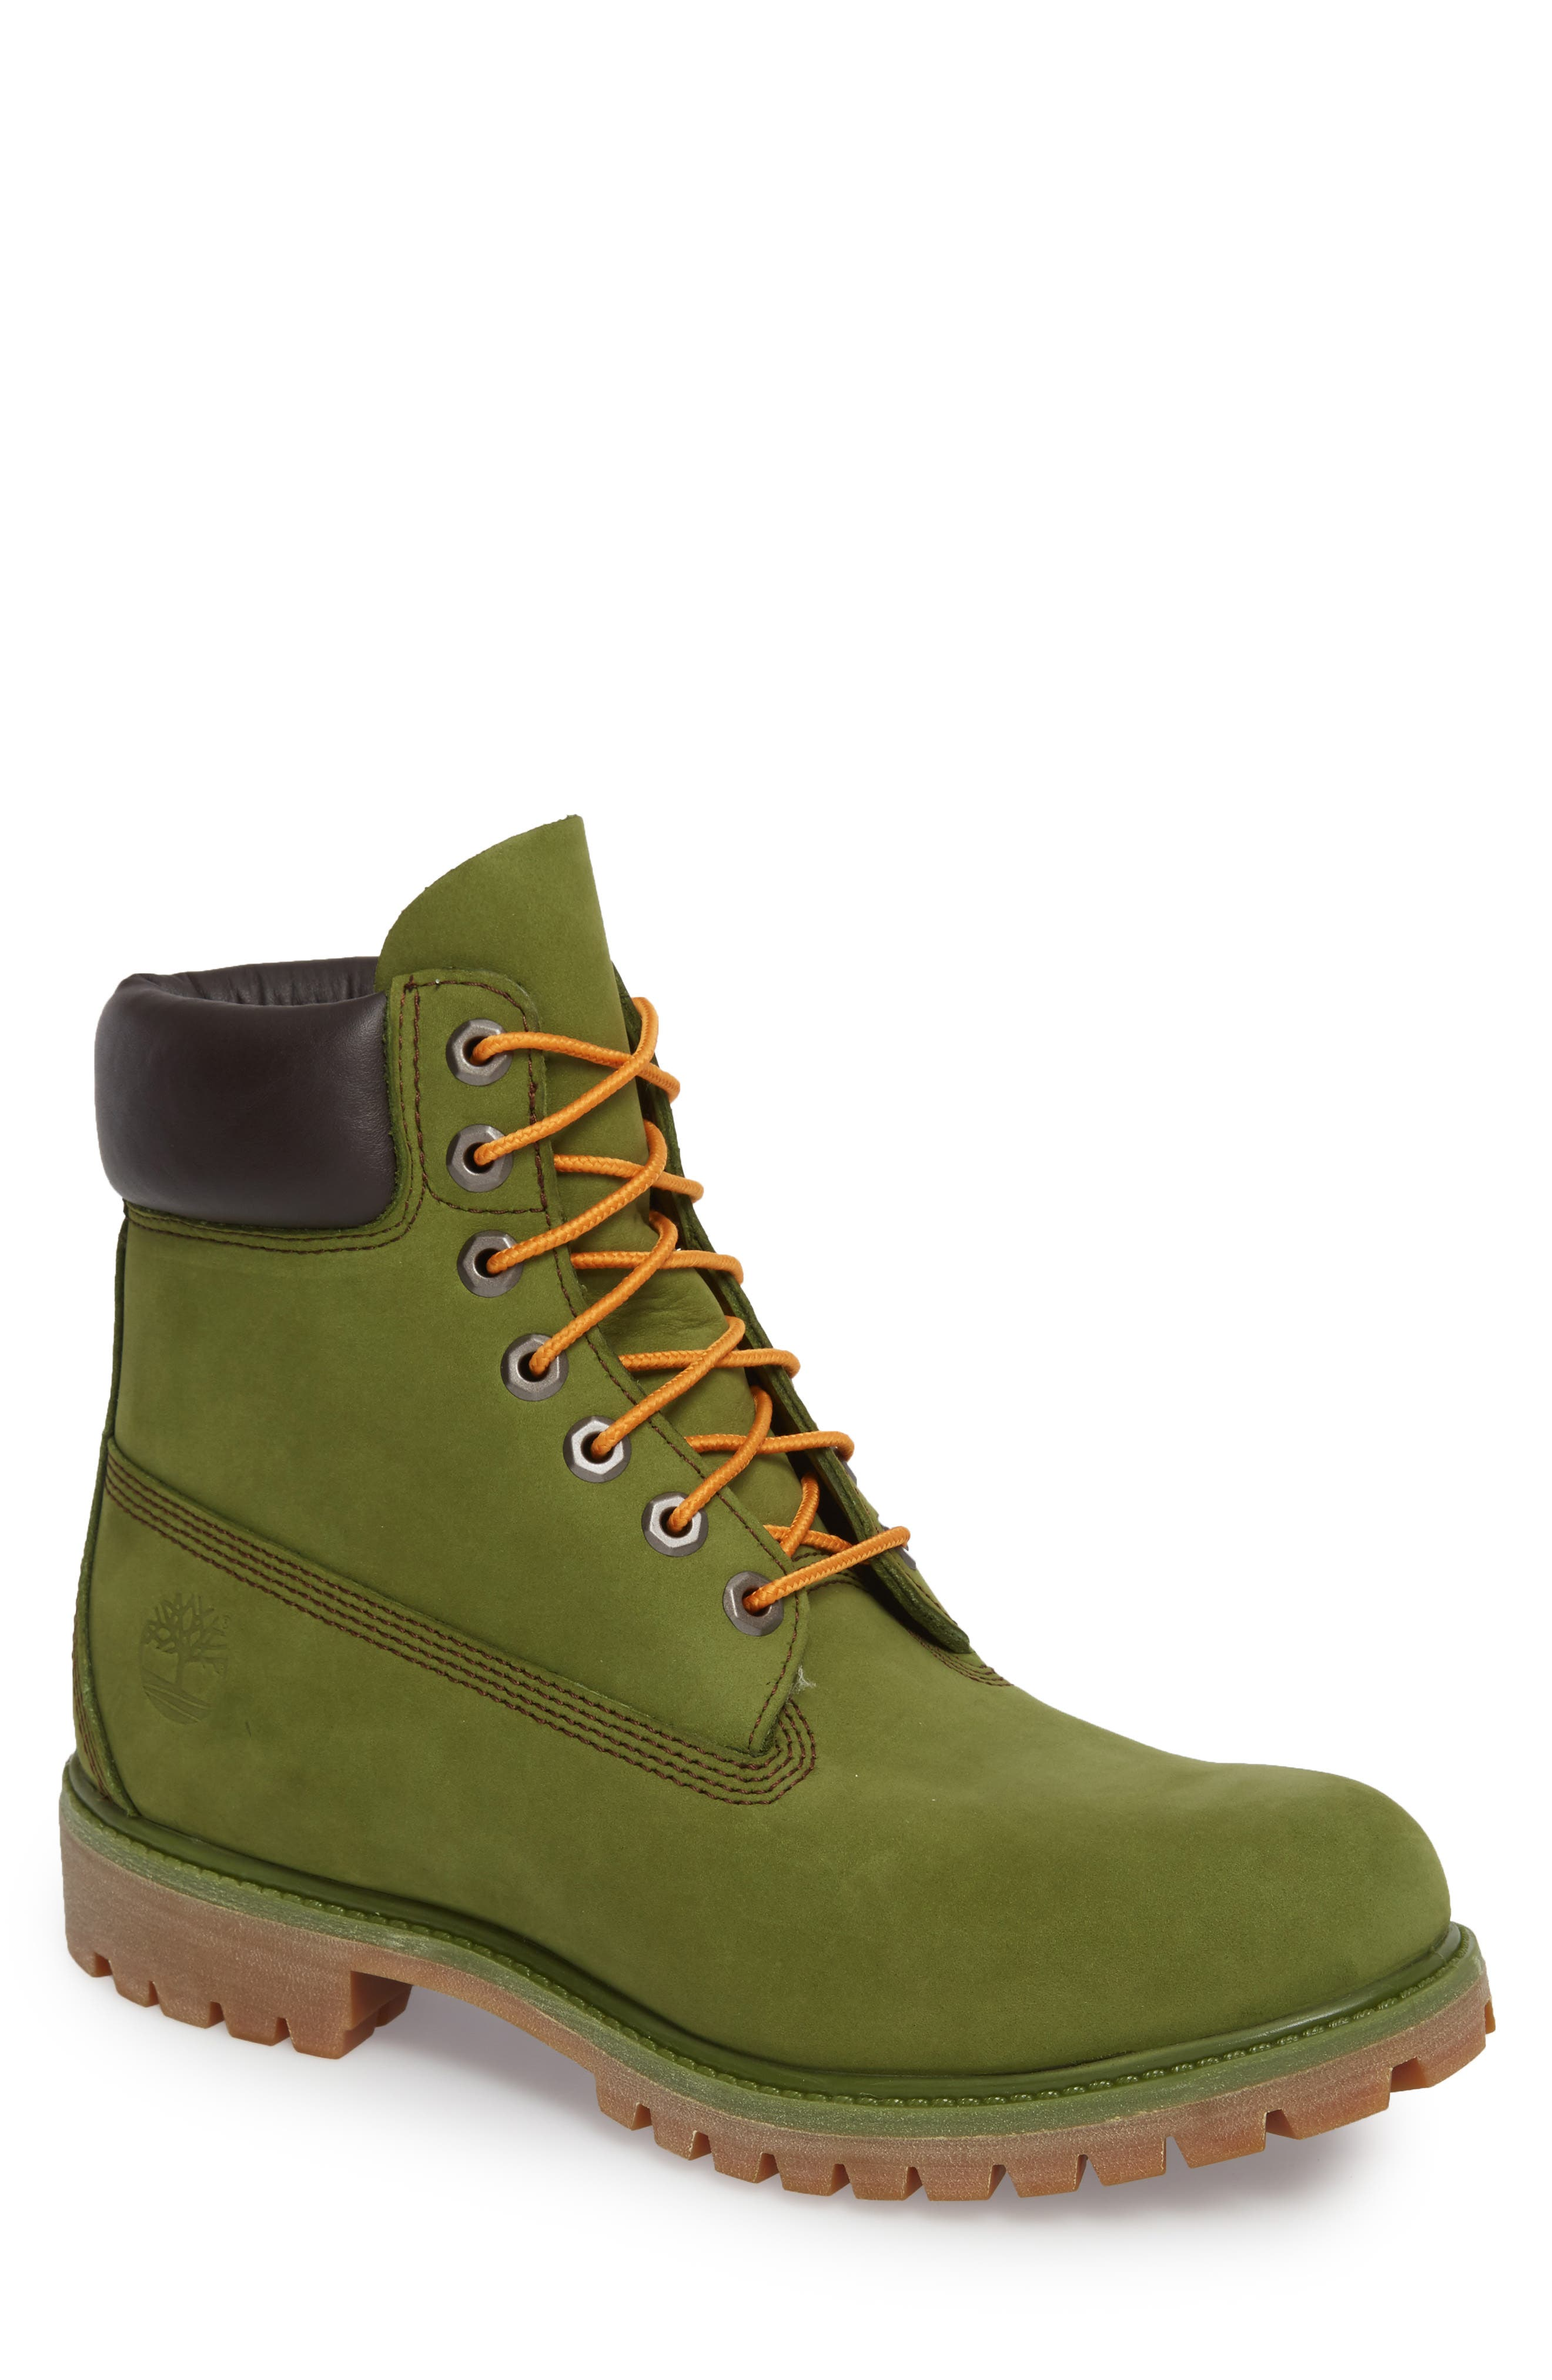 'Six Inch Classic Boots Series - Premium' Boot,                         Main,                         color, Pesto Waterbuck